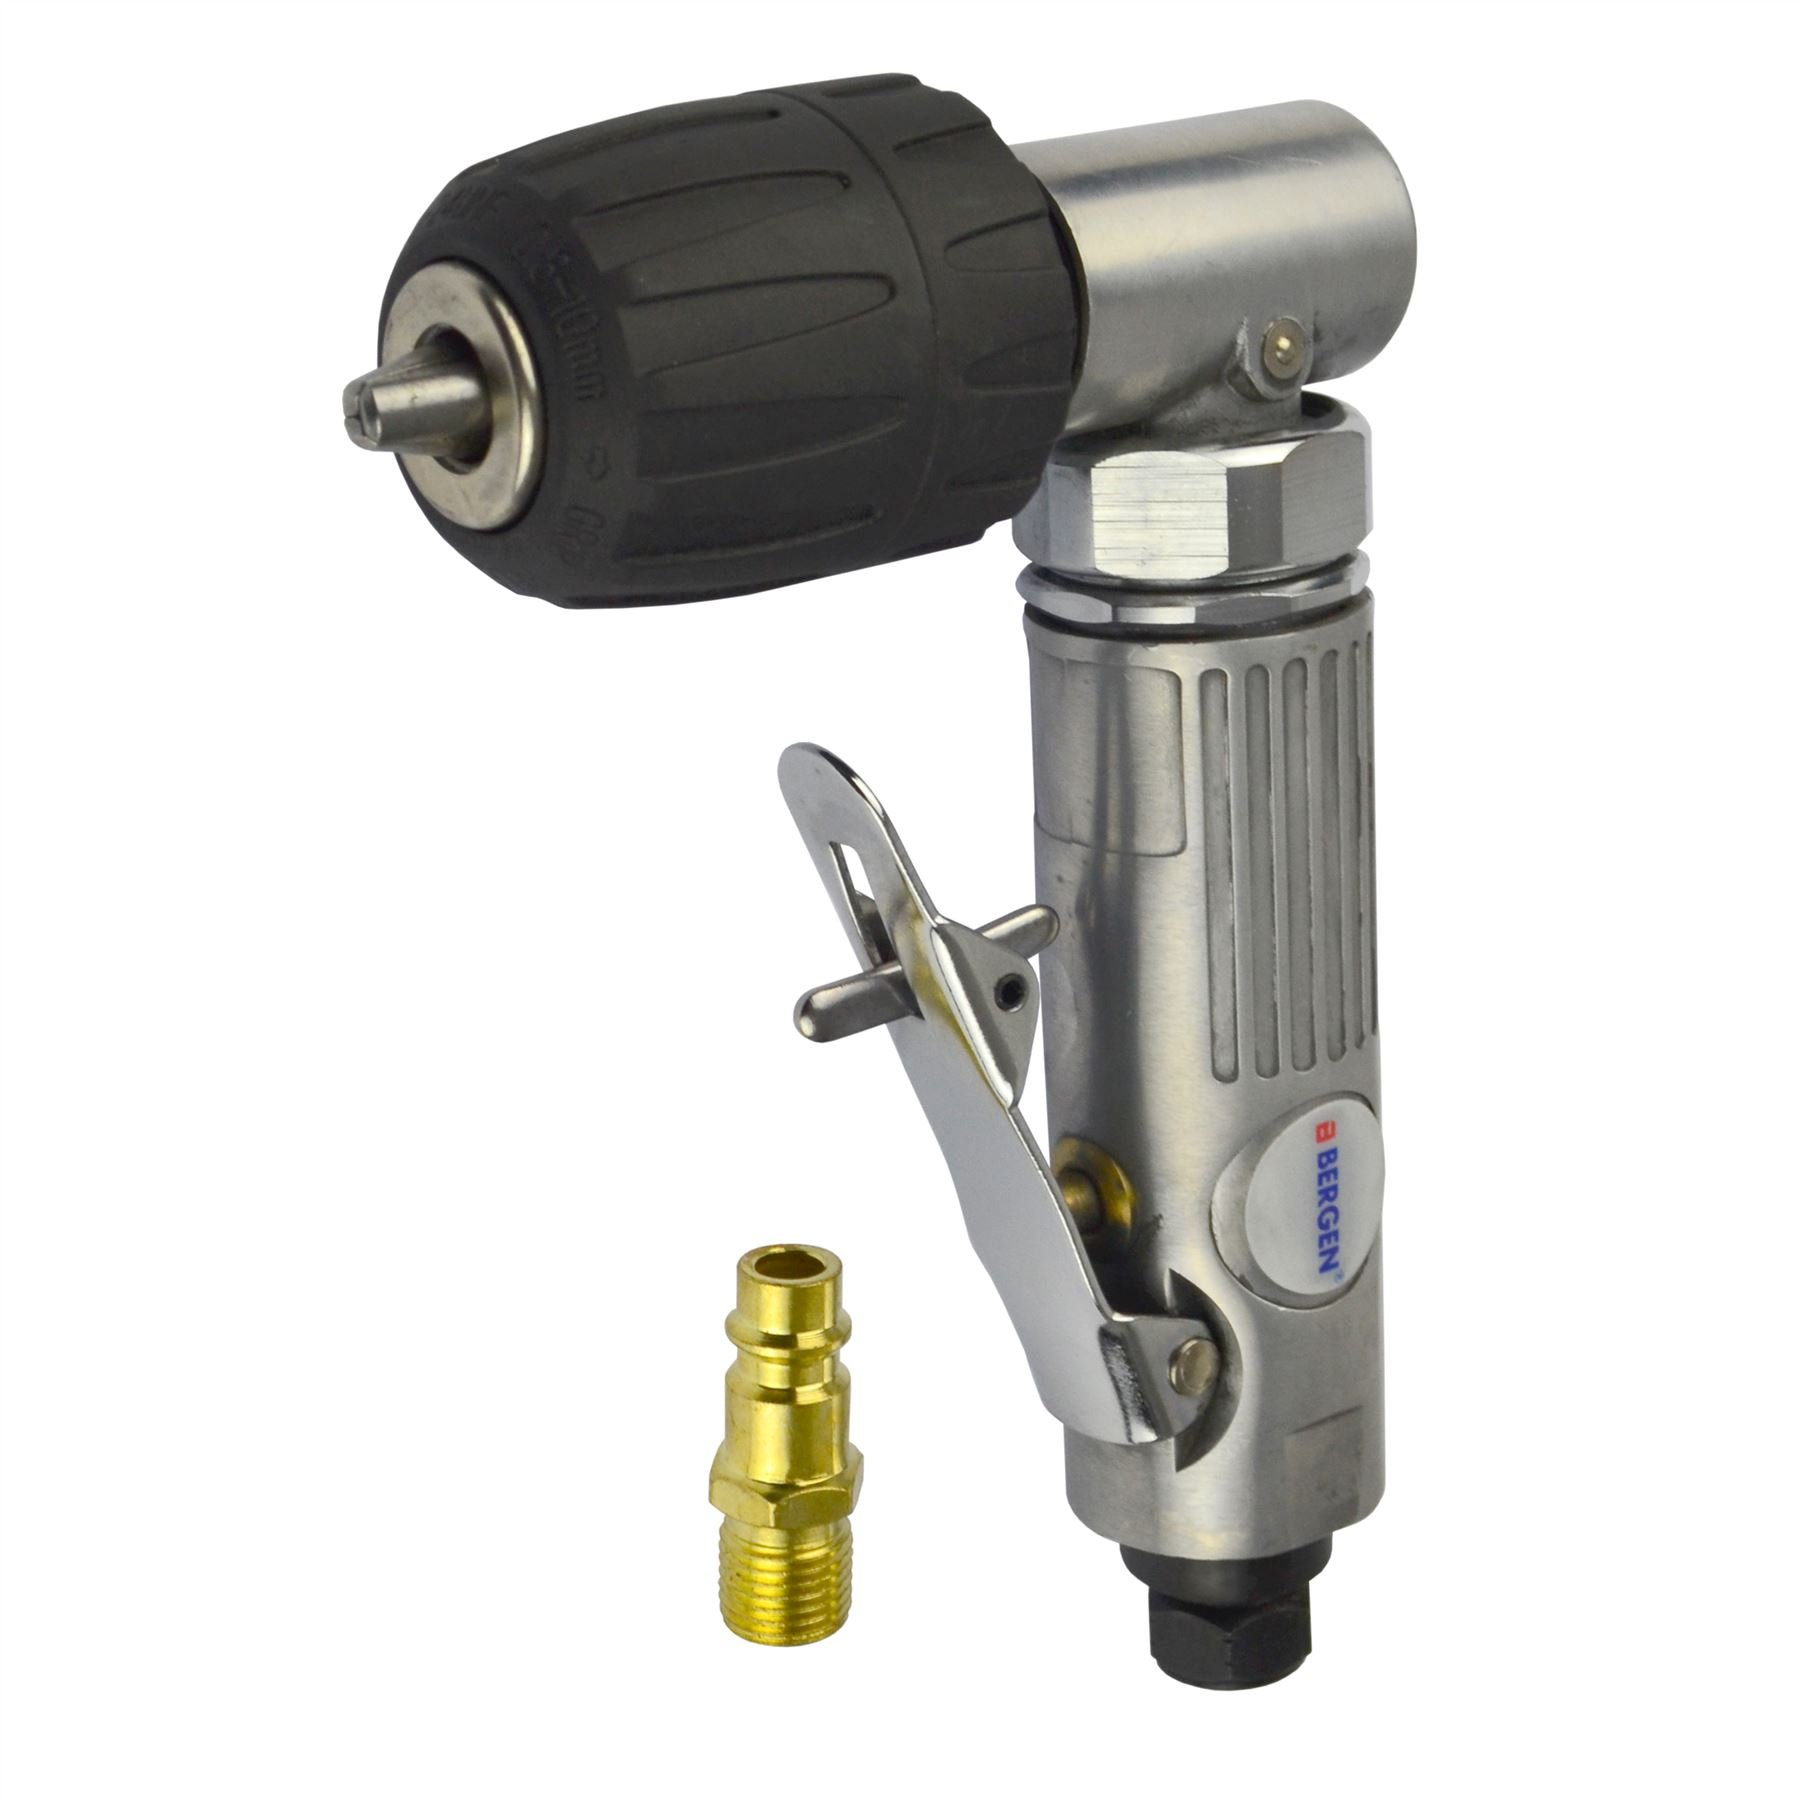 3/8'' Keyless Air Angle Drill Right Angle Drilling Tool Chuck BERGEN AT643